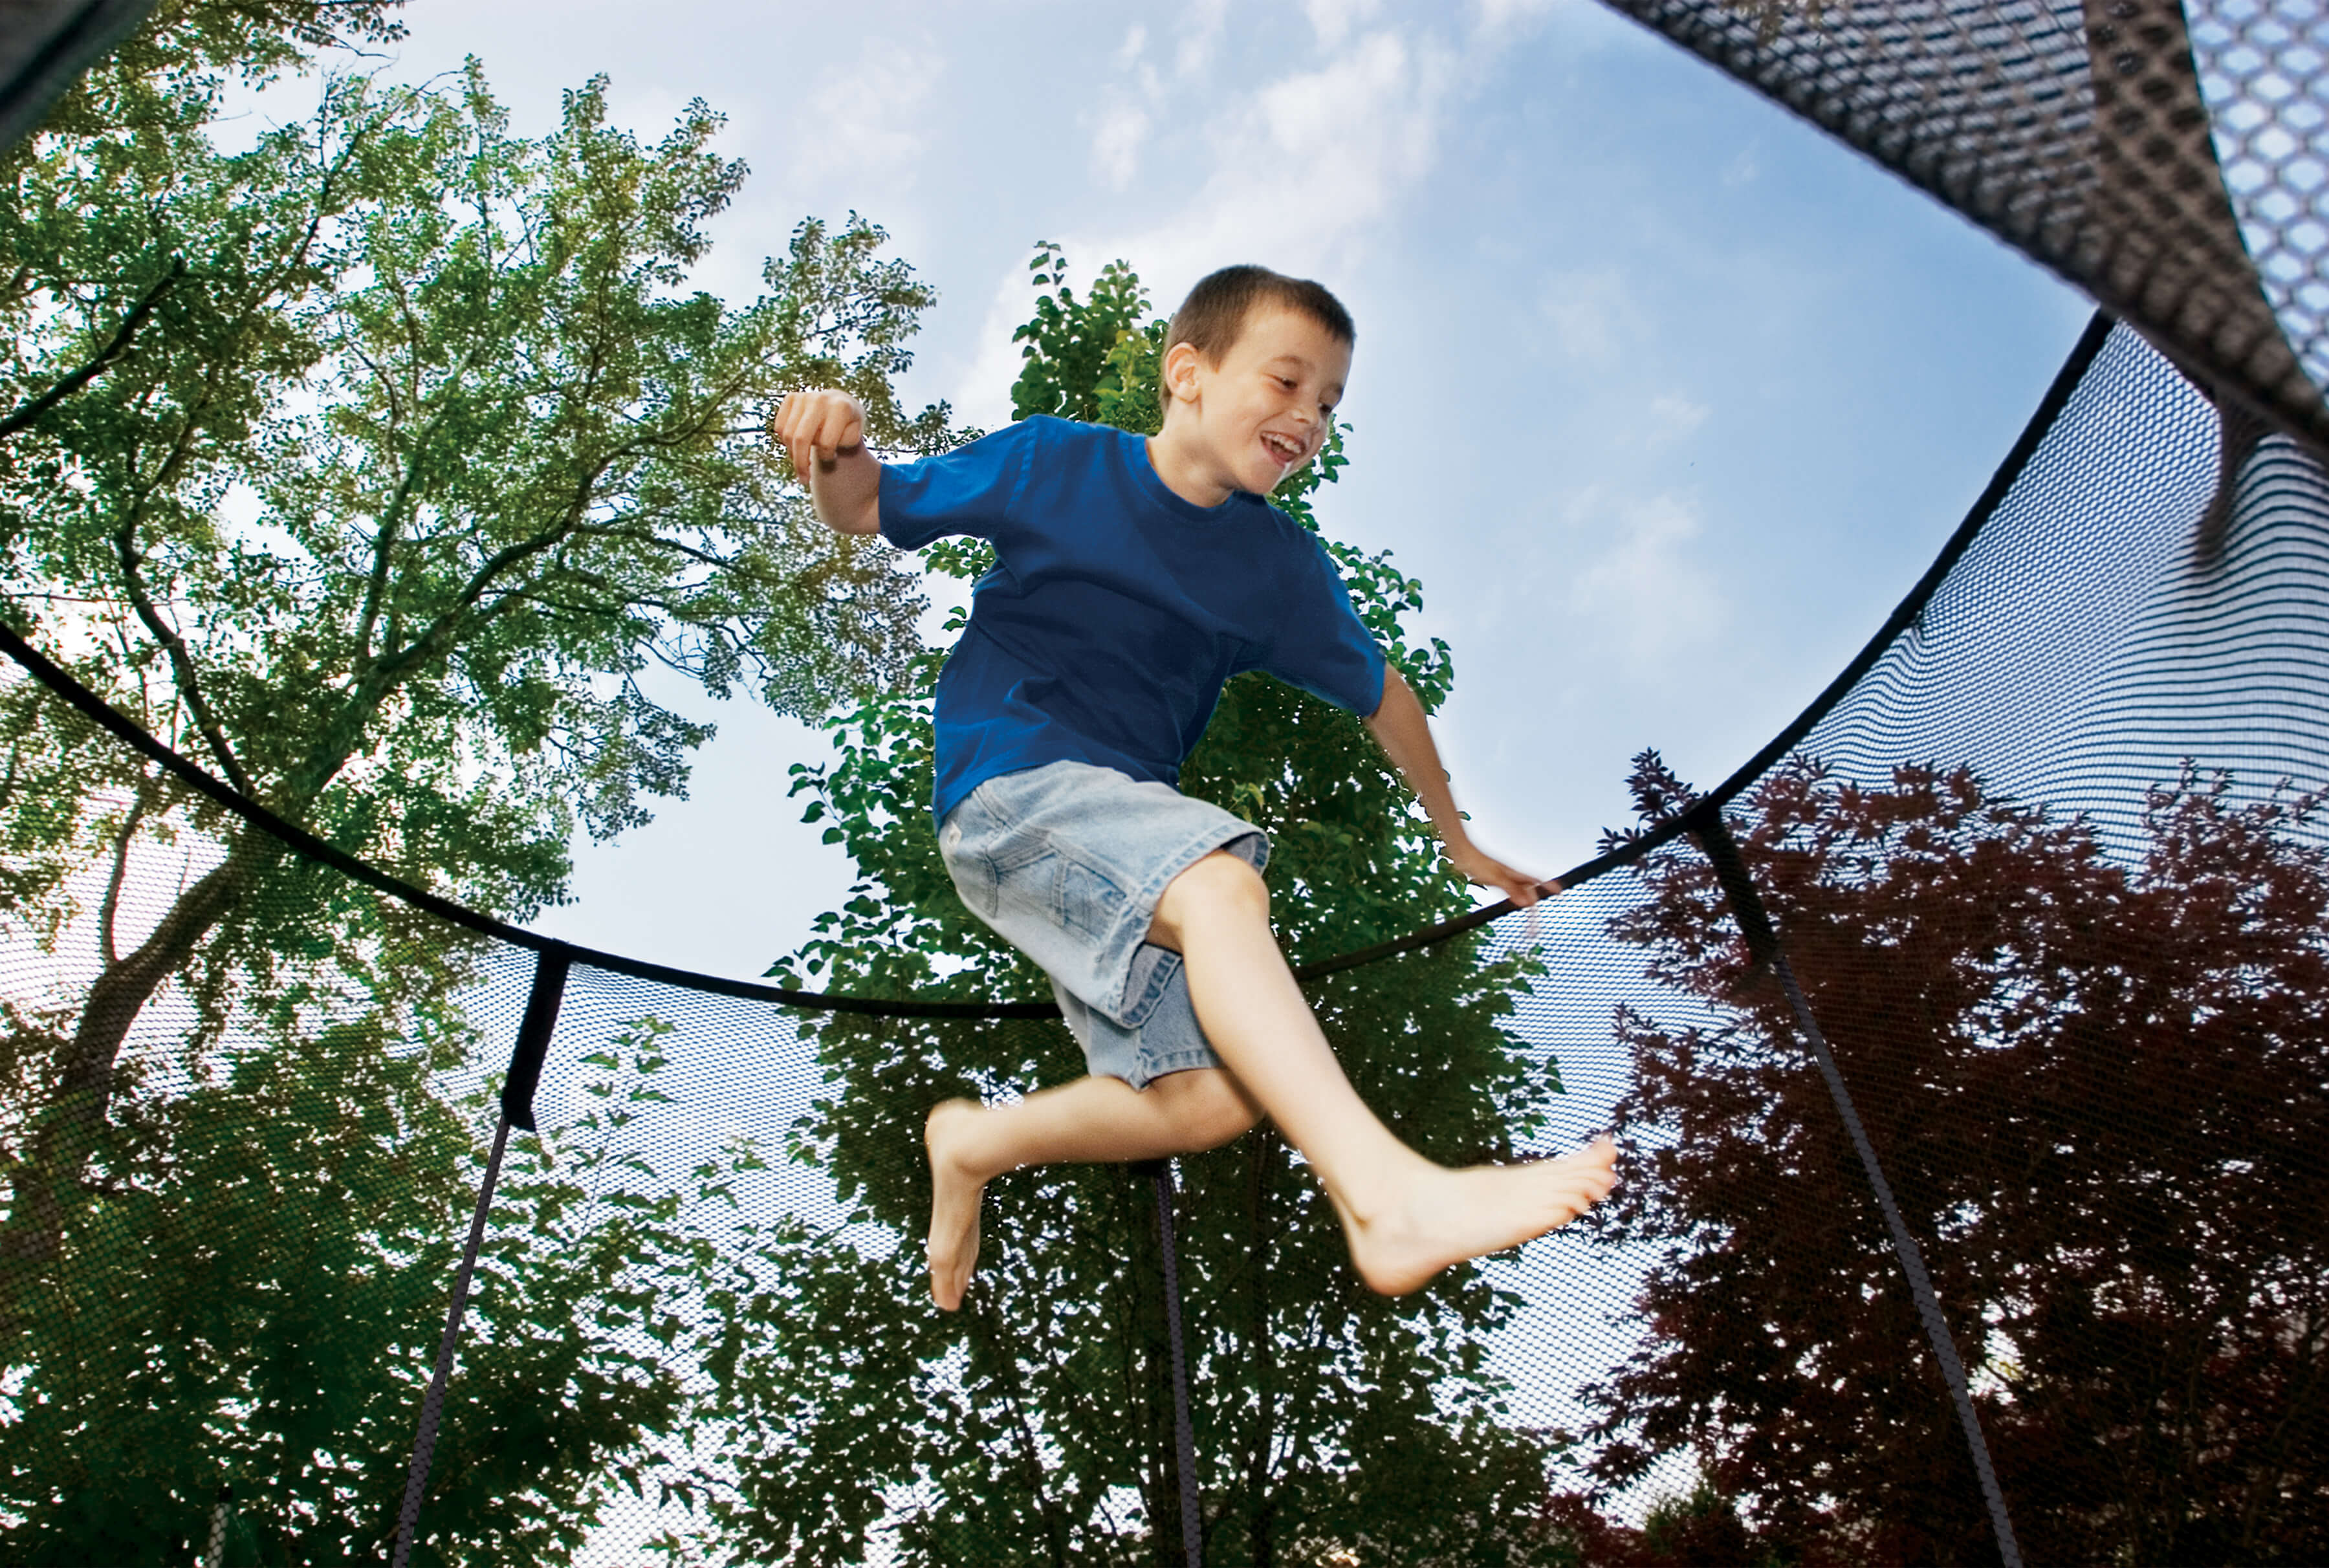 Fun Games To Play On The Springfree Trampoline